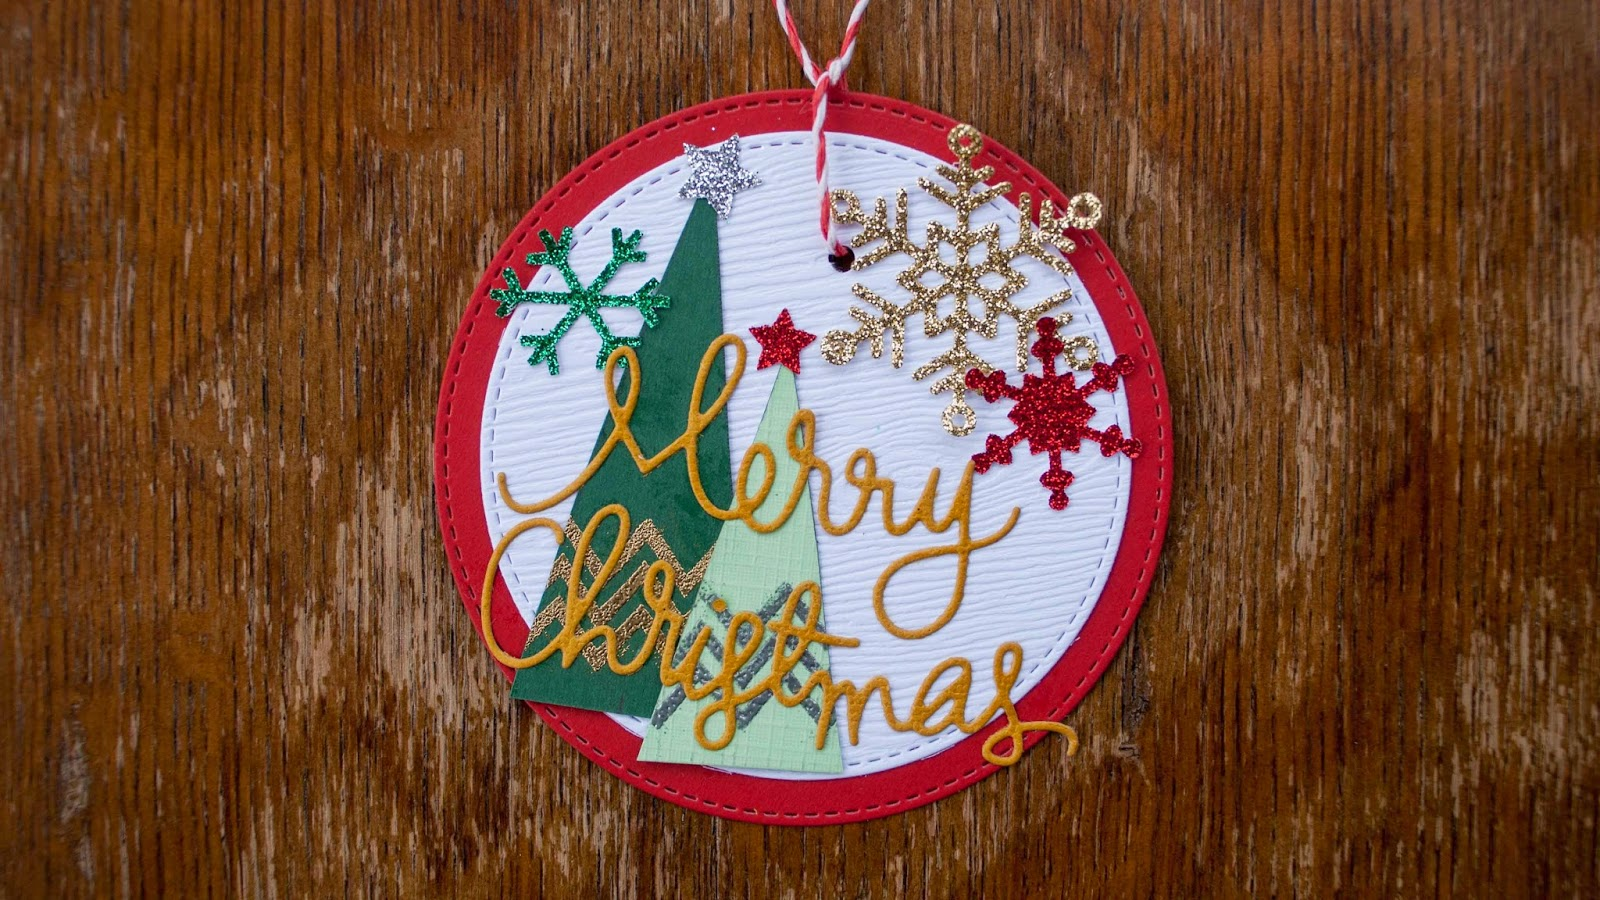 fast christmas ornaments using handmade triangle holiday trees in red